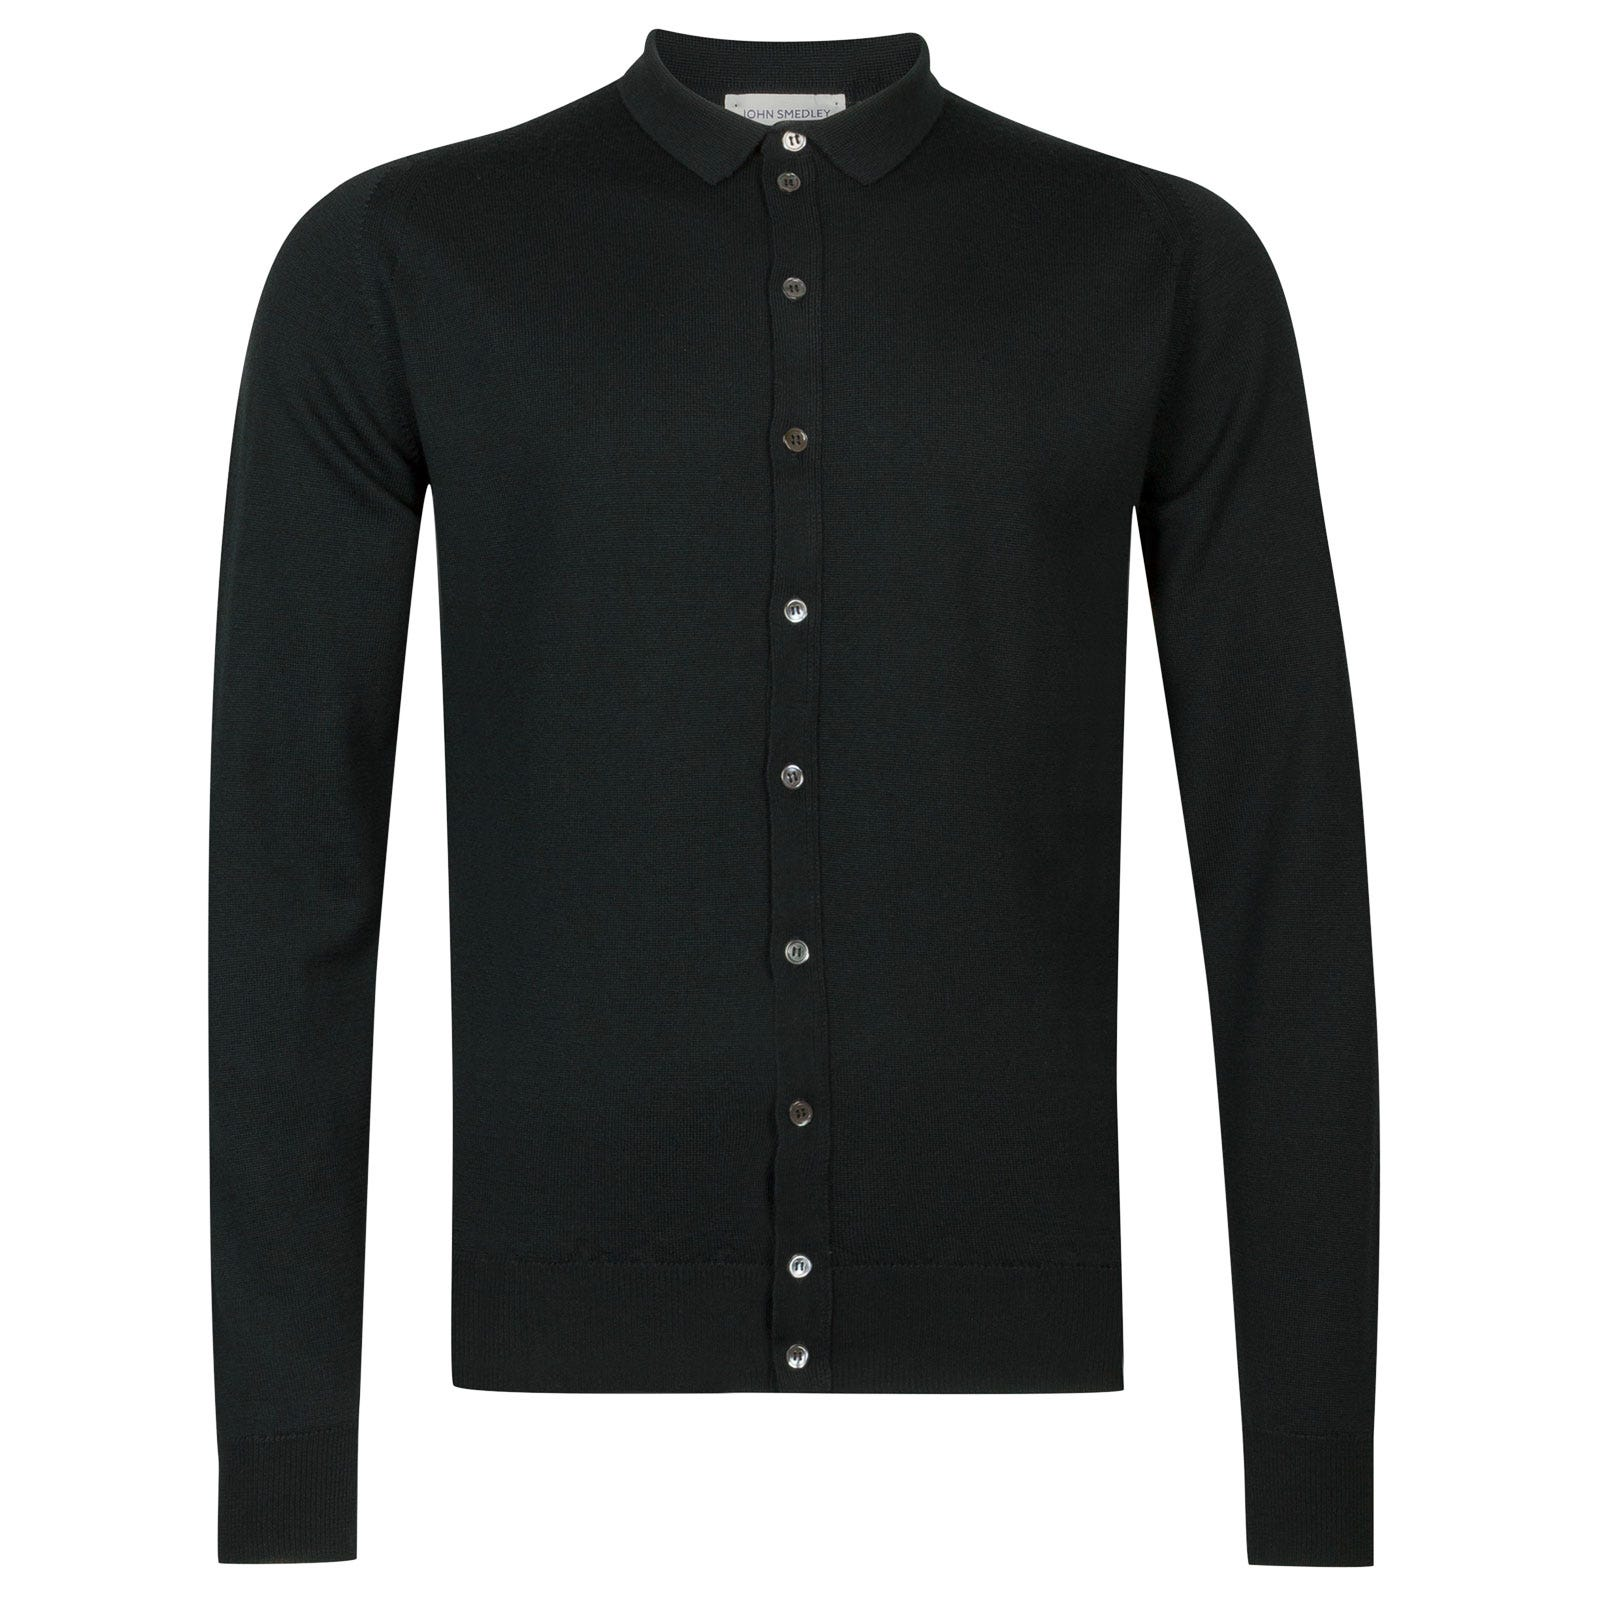 John Smedley parwish Merino Wool Shirt in Racing Green-XXL